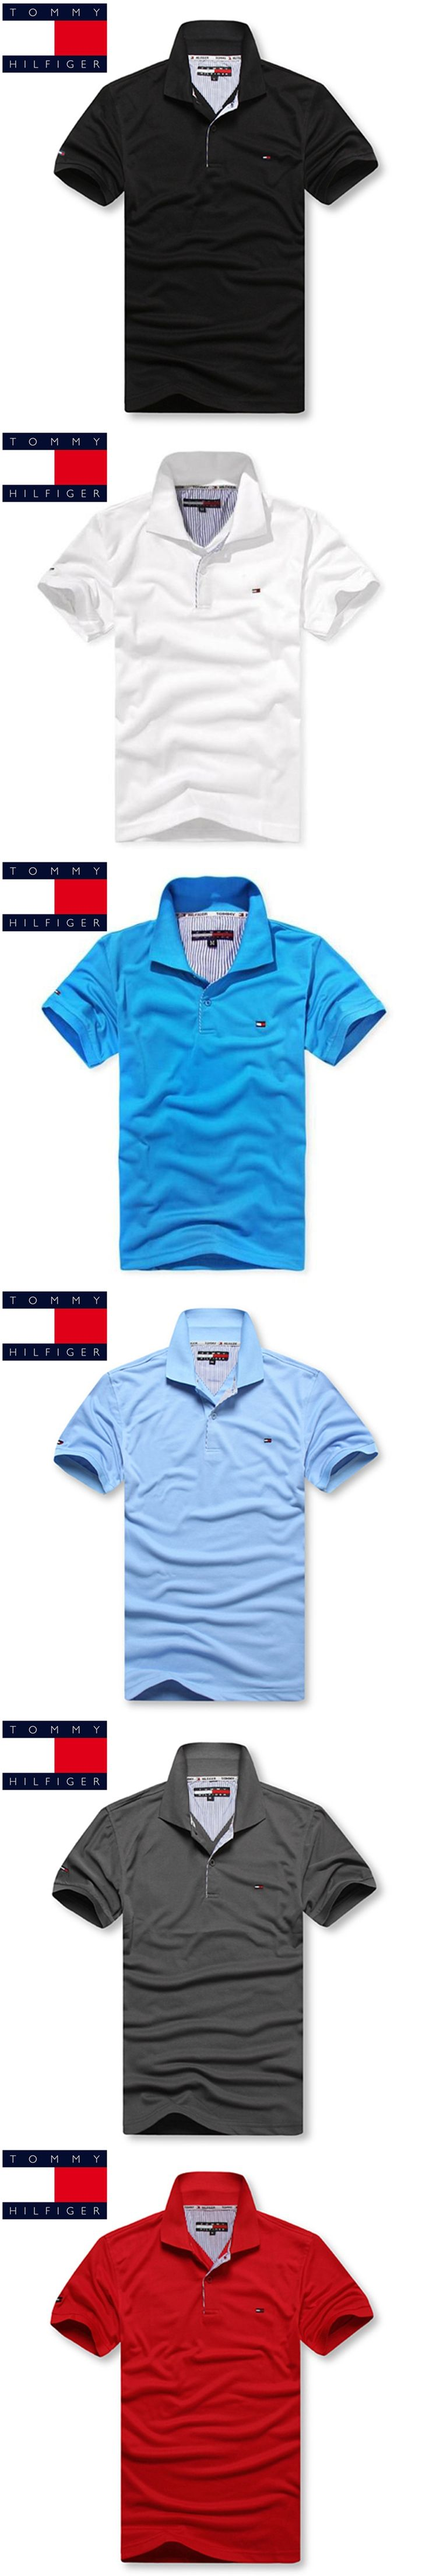 TOMMY HILFIGER 2018 New Arrival Hot Sale Polo Shirt Men Spring Summer 22 Colors Fashion Casual Short Sleeve Men Polo Size S-XXXL